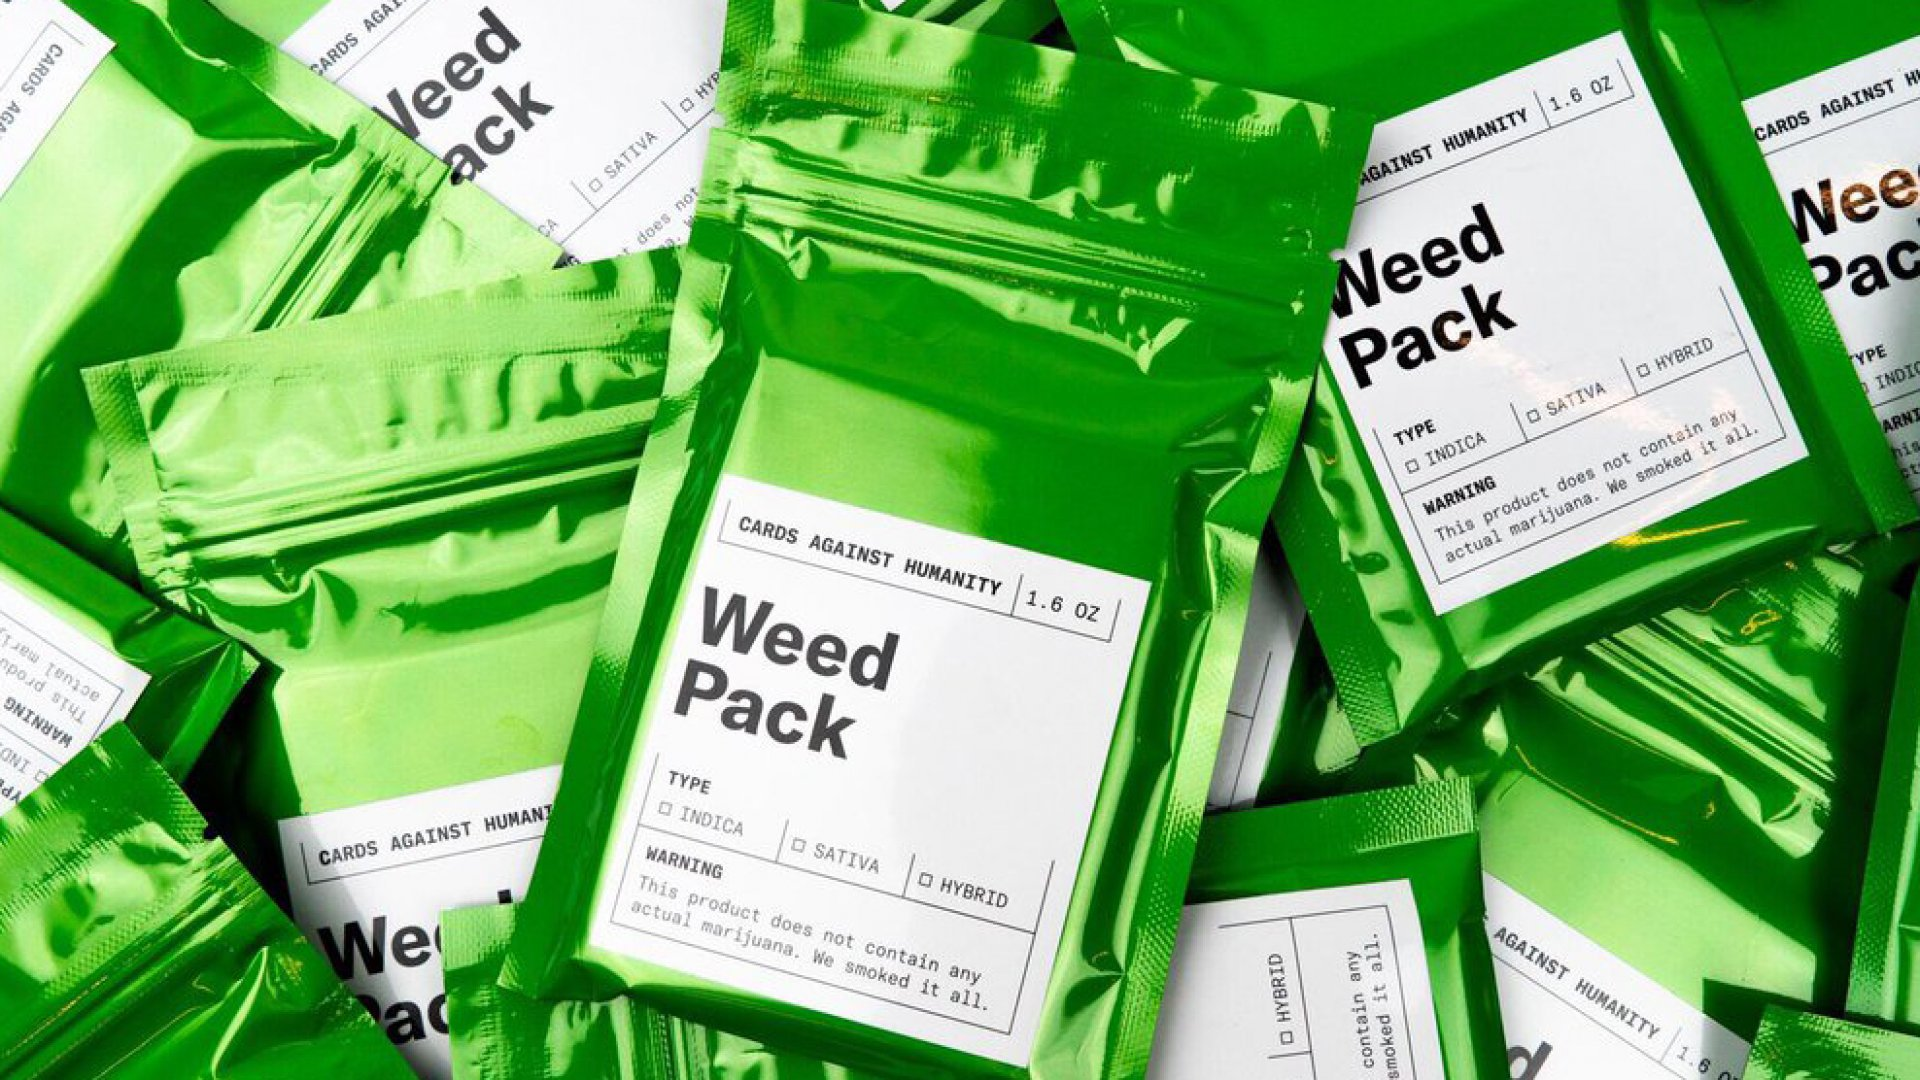 Cards Against Humanity Donated $70,000 to Help Legalize Recreational Marijuana in Illinois